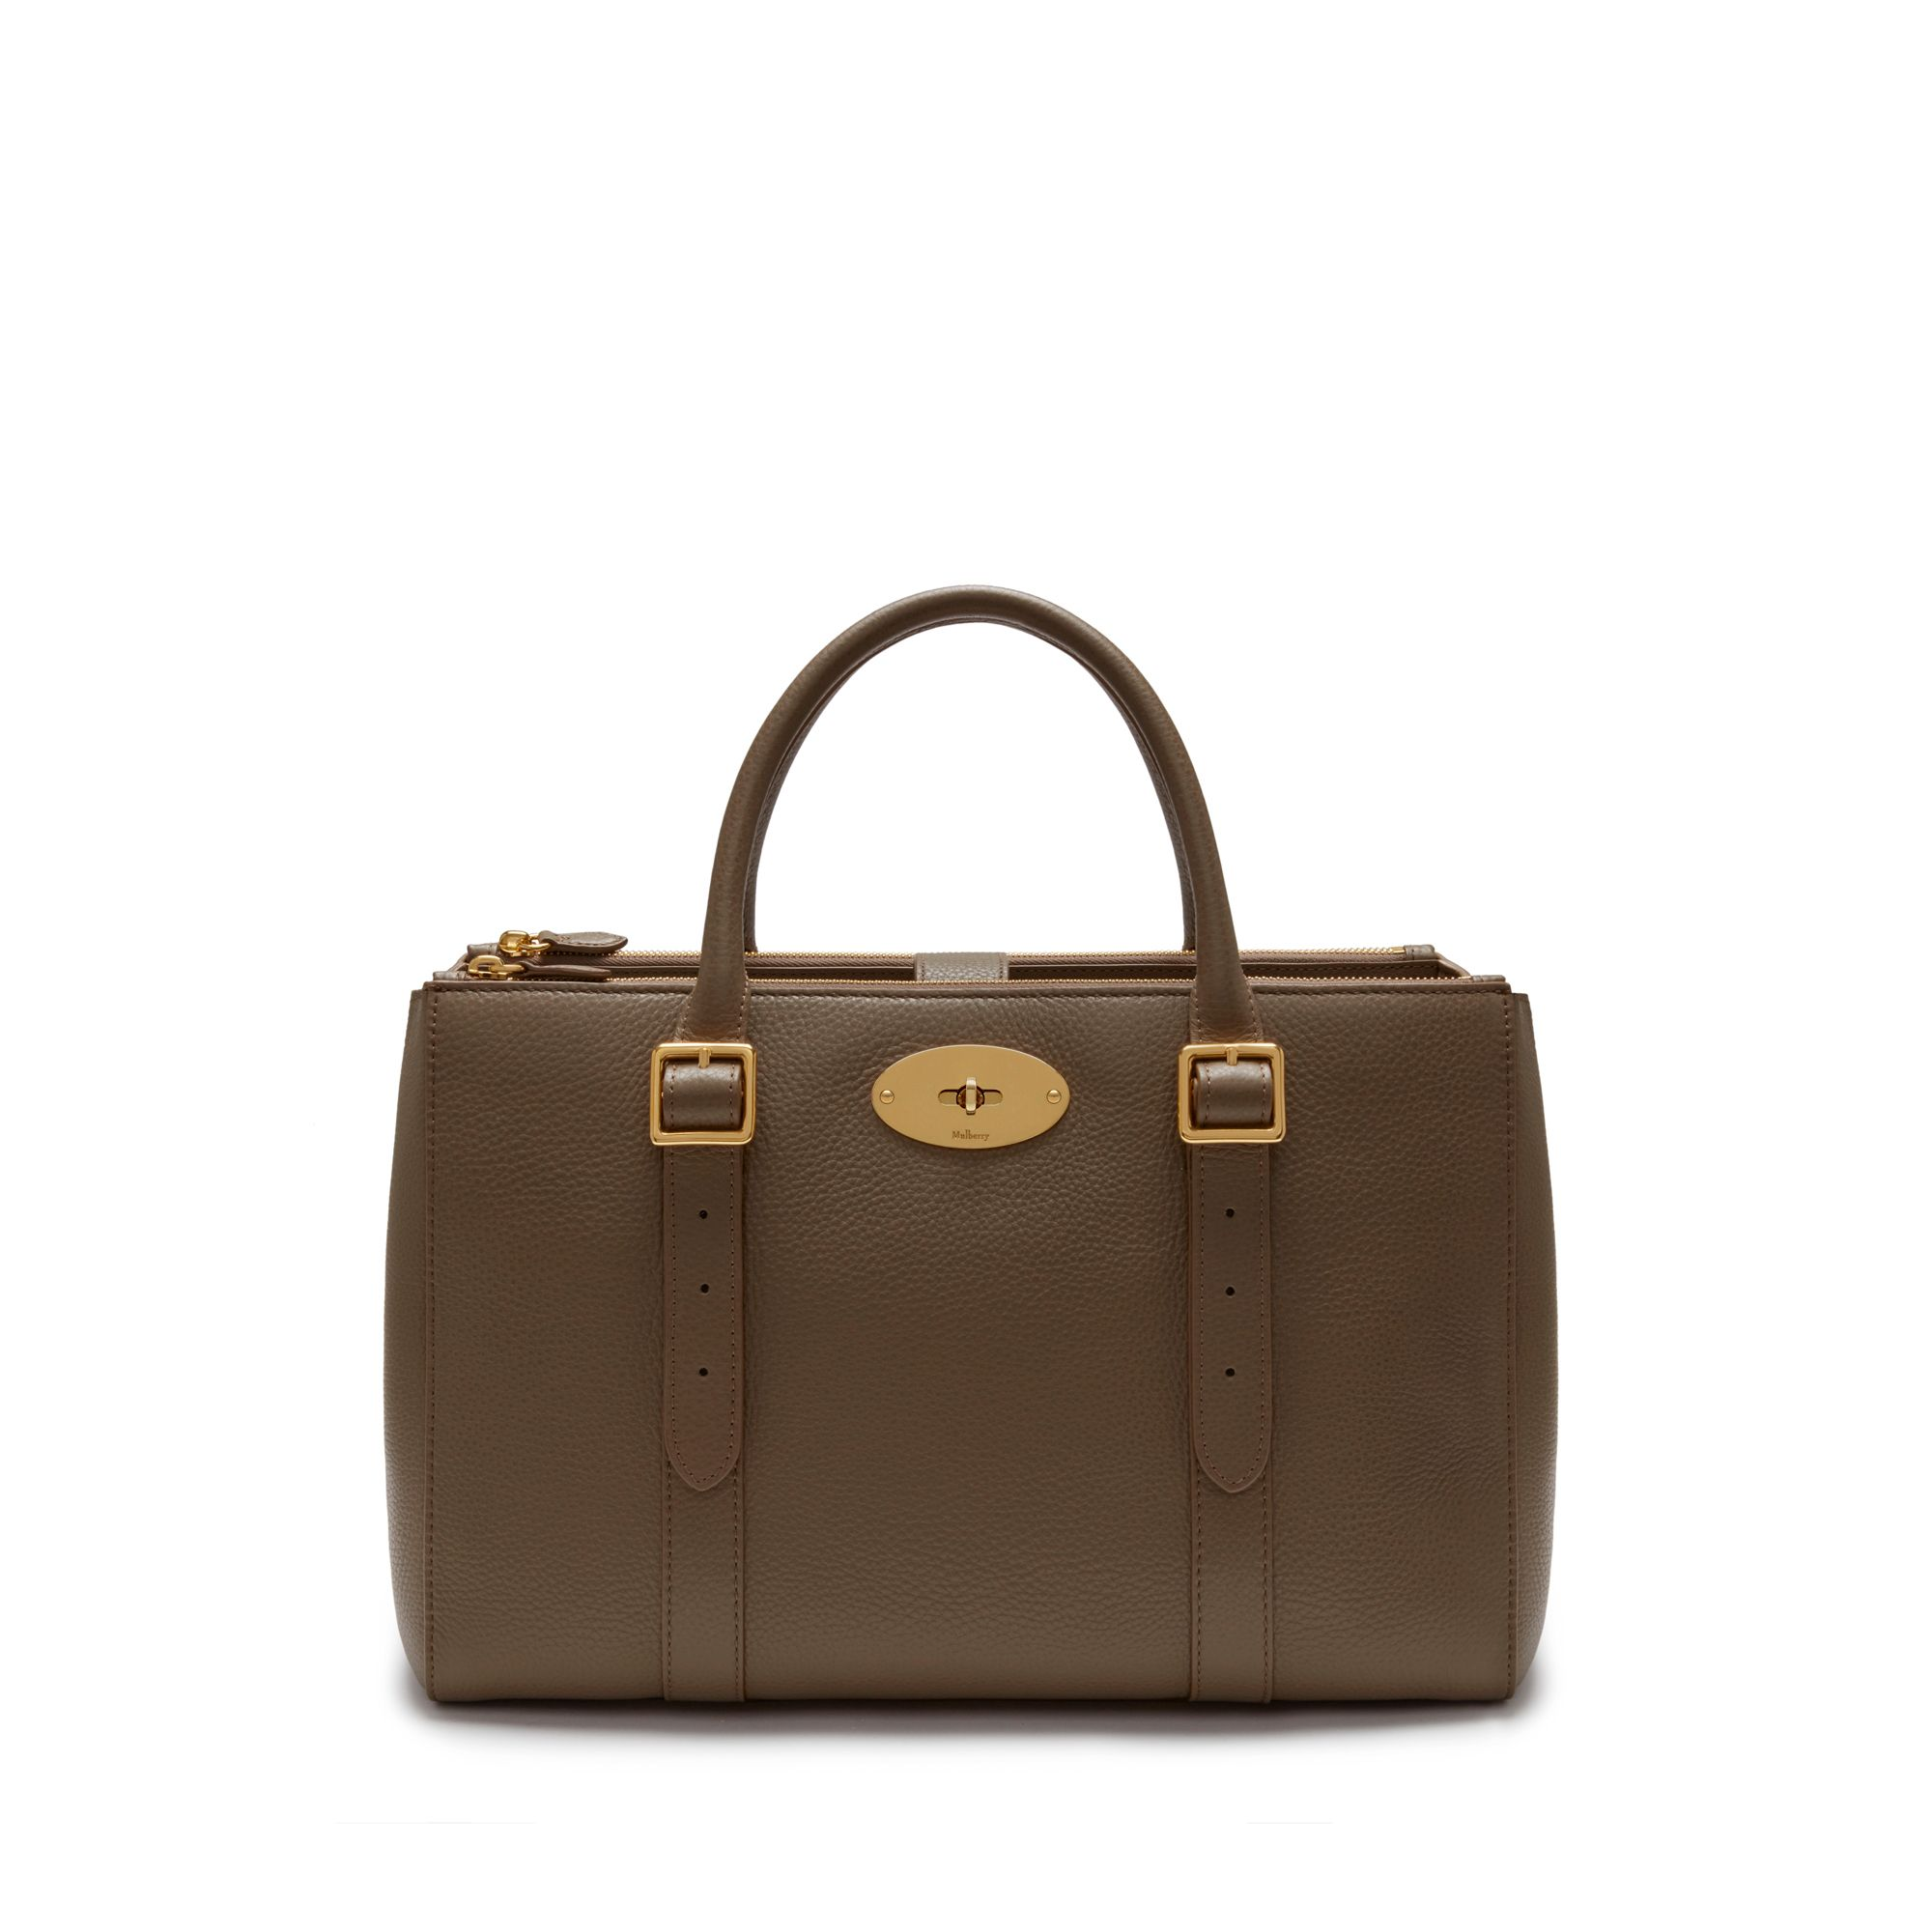 best authentic mulberry bayswater hardware bayswater double zip tote family  mulberry a230f 60427 53aadfb8e0414